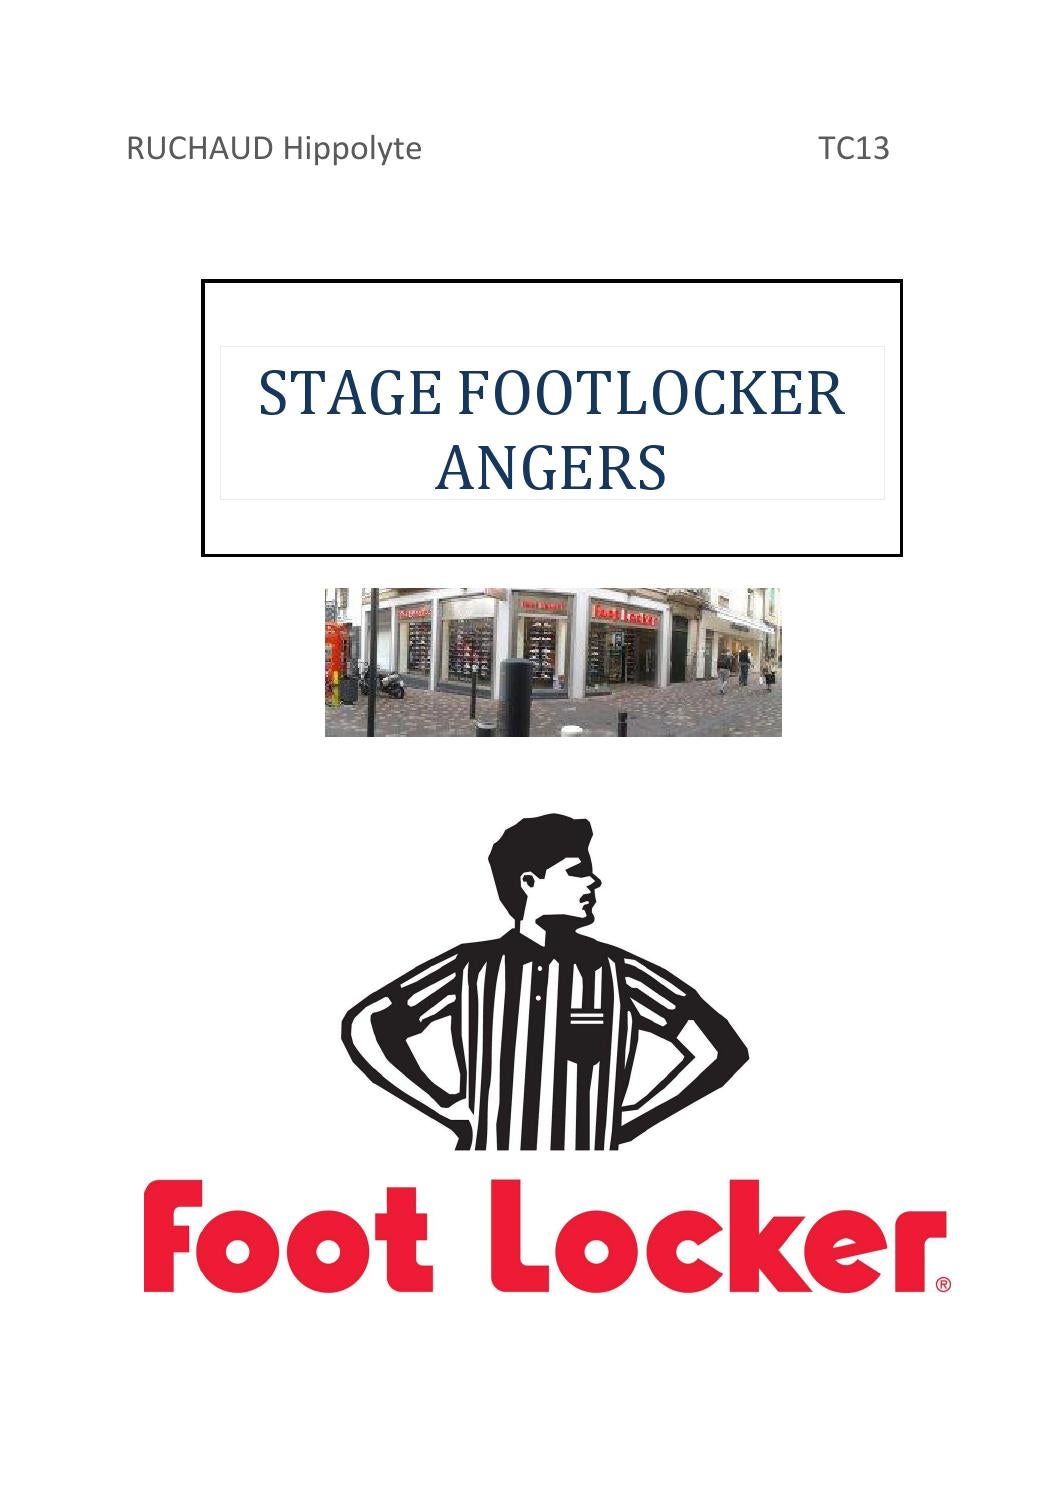 r sum de stage foot locker by hruchaud issuu. Black Bedroom Furniture Sets. Home Design Ideas